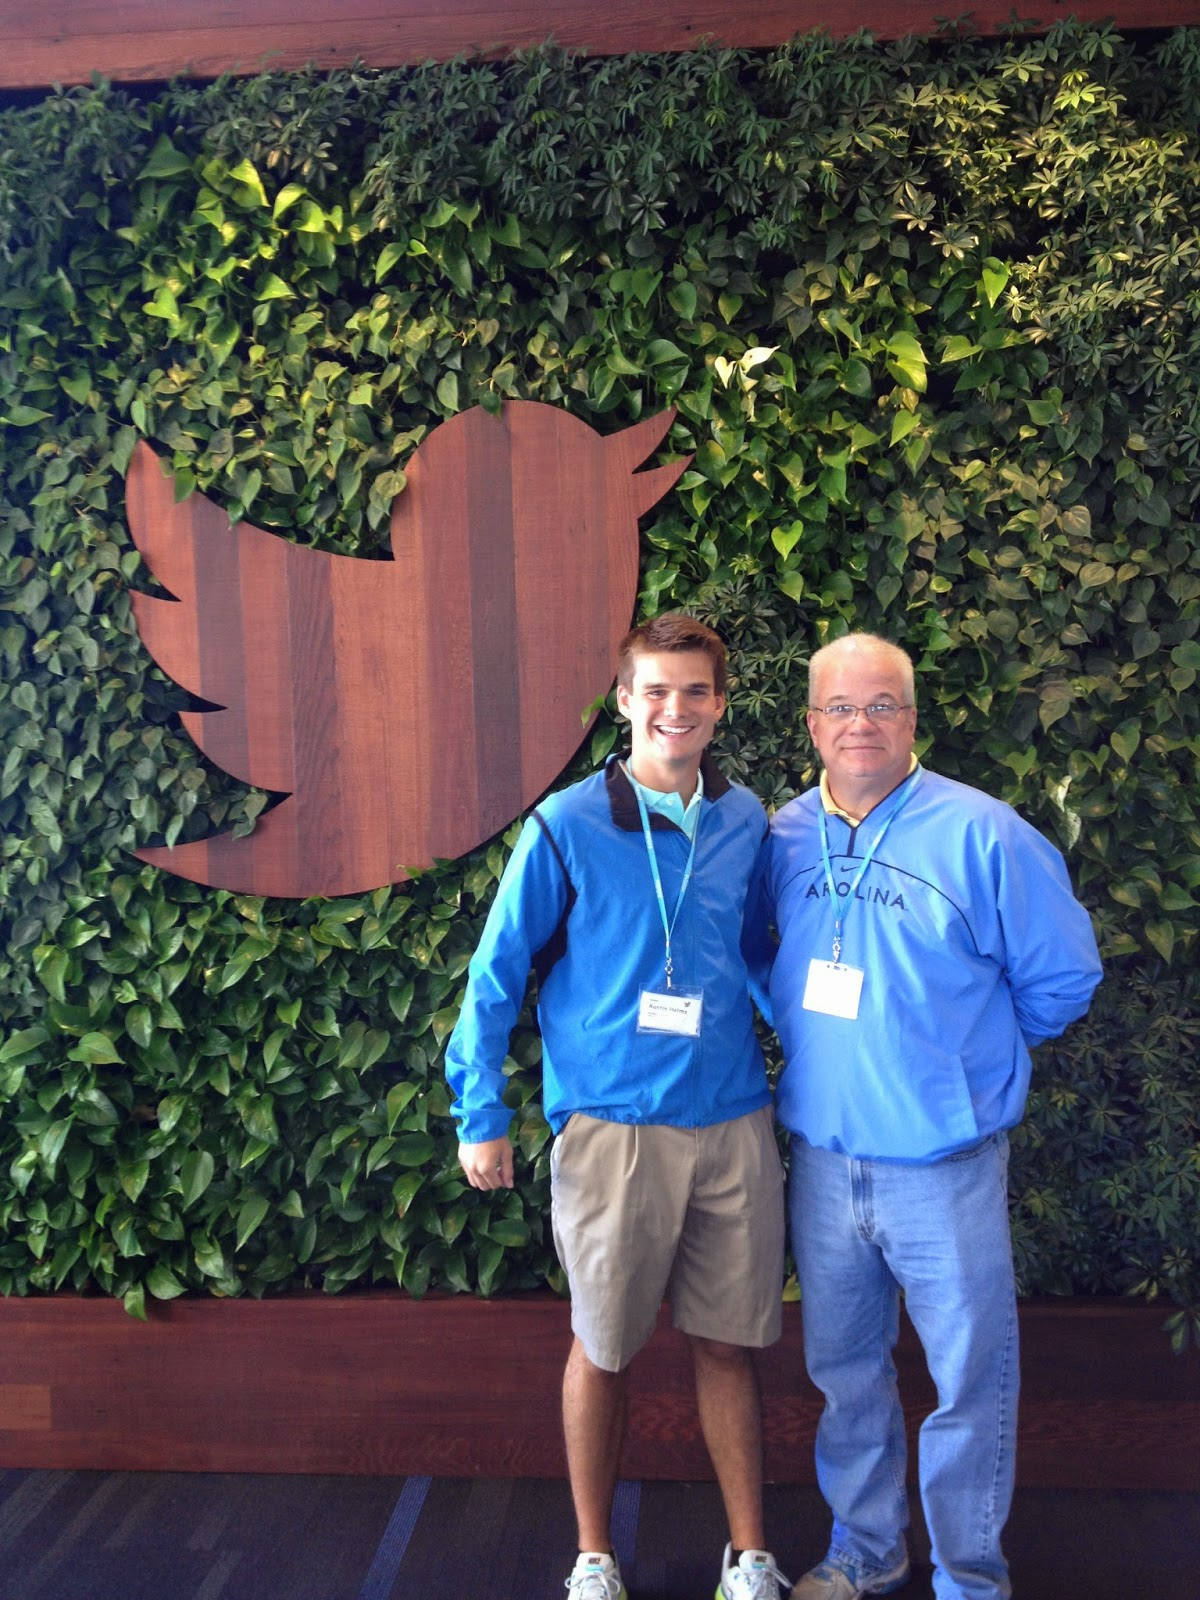 Dad and I visit Twitter!